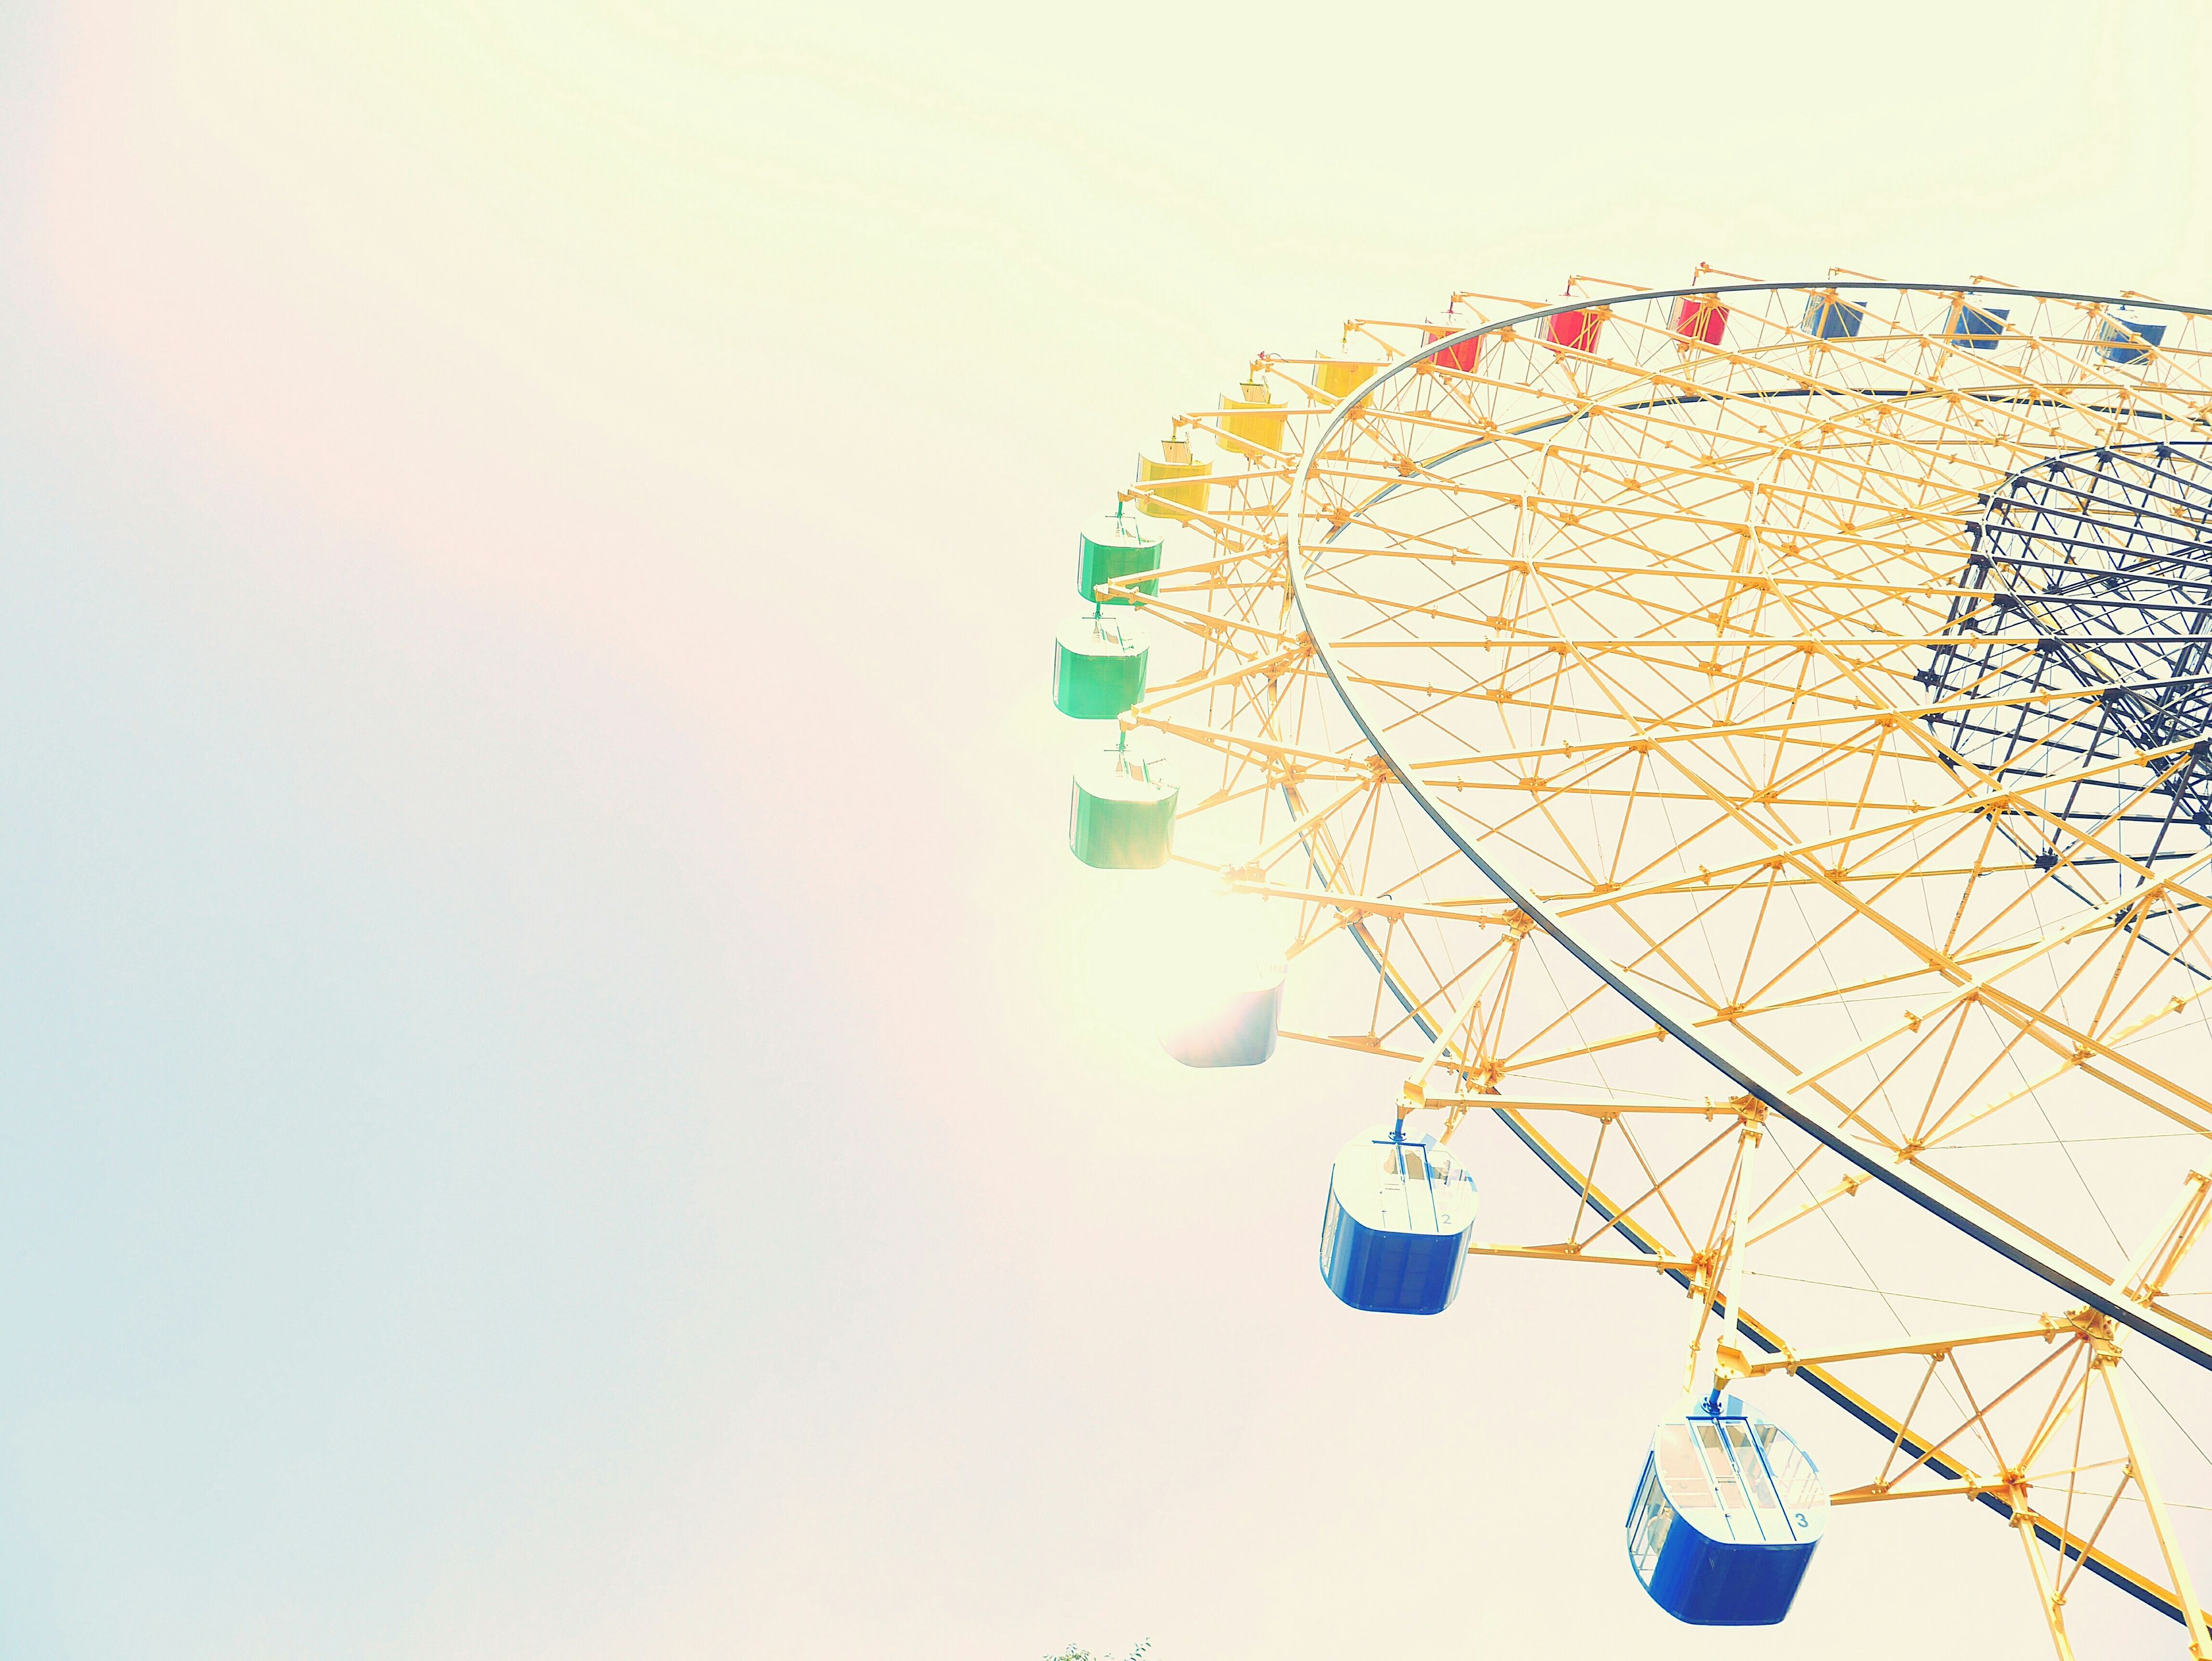 low angle view, amusement park, ferris wheel, clear sky, amusement park ride, built structure, arts culture and entertainment, architecture, building exterior, copy space, sky, circle, outdoors, tall - high, day, multi colored, no people, pattern, modern, tree